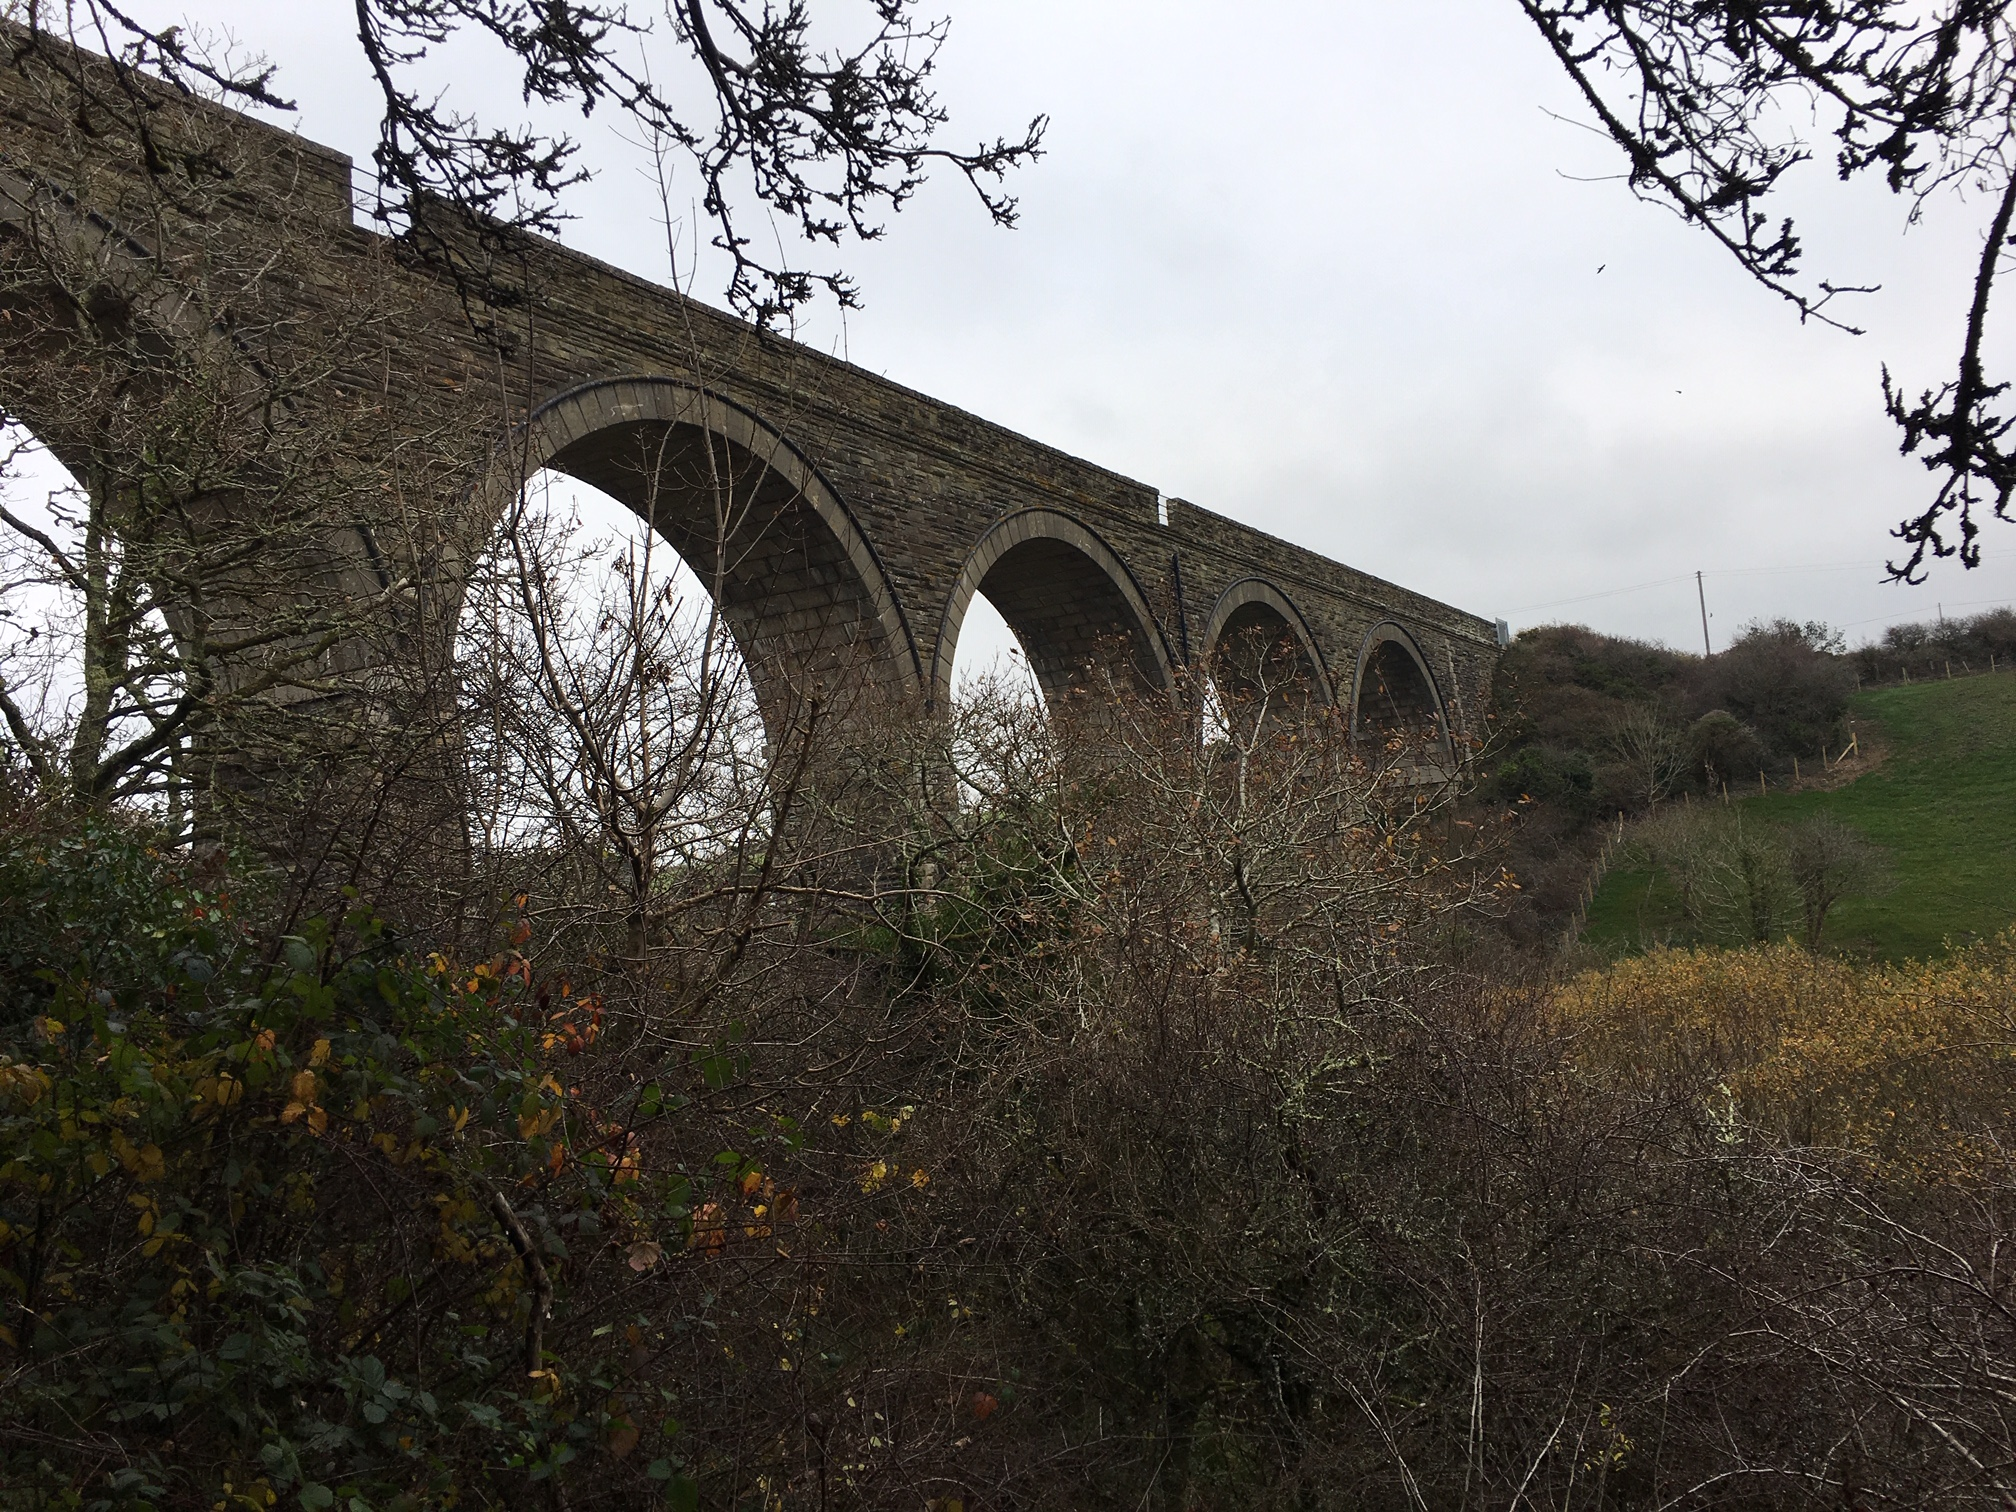 The viaduct - on one of our walks from the farm